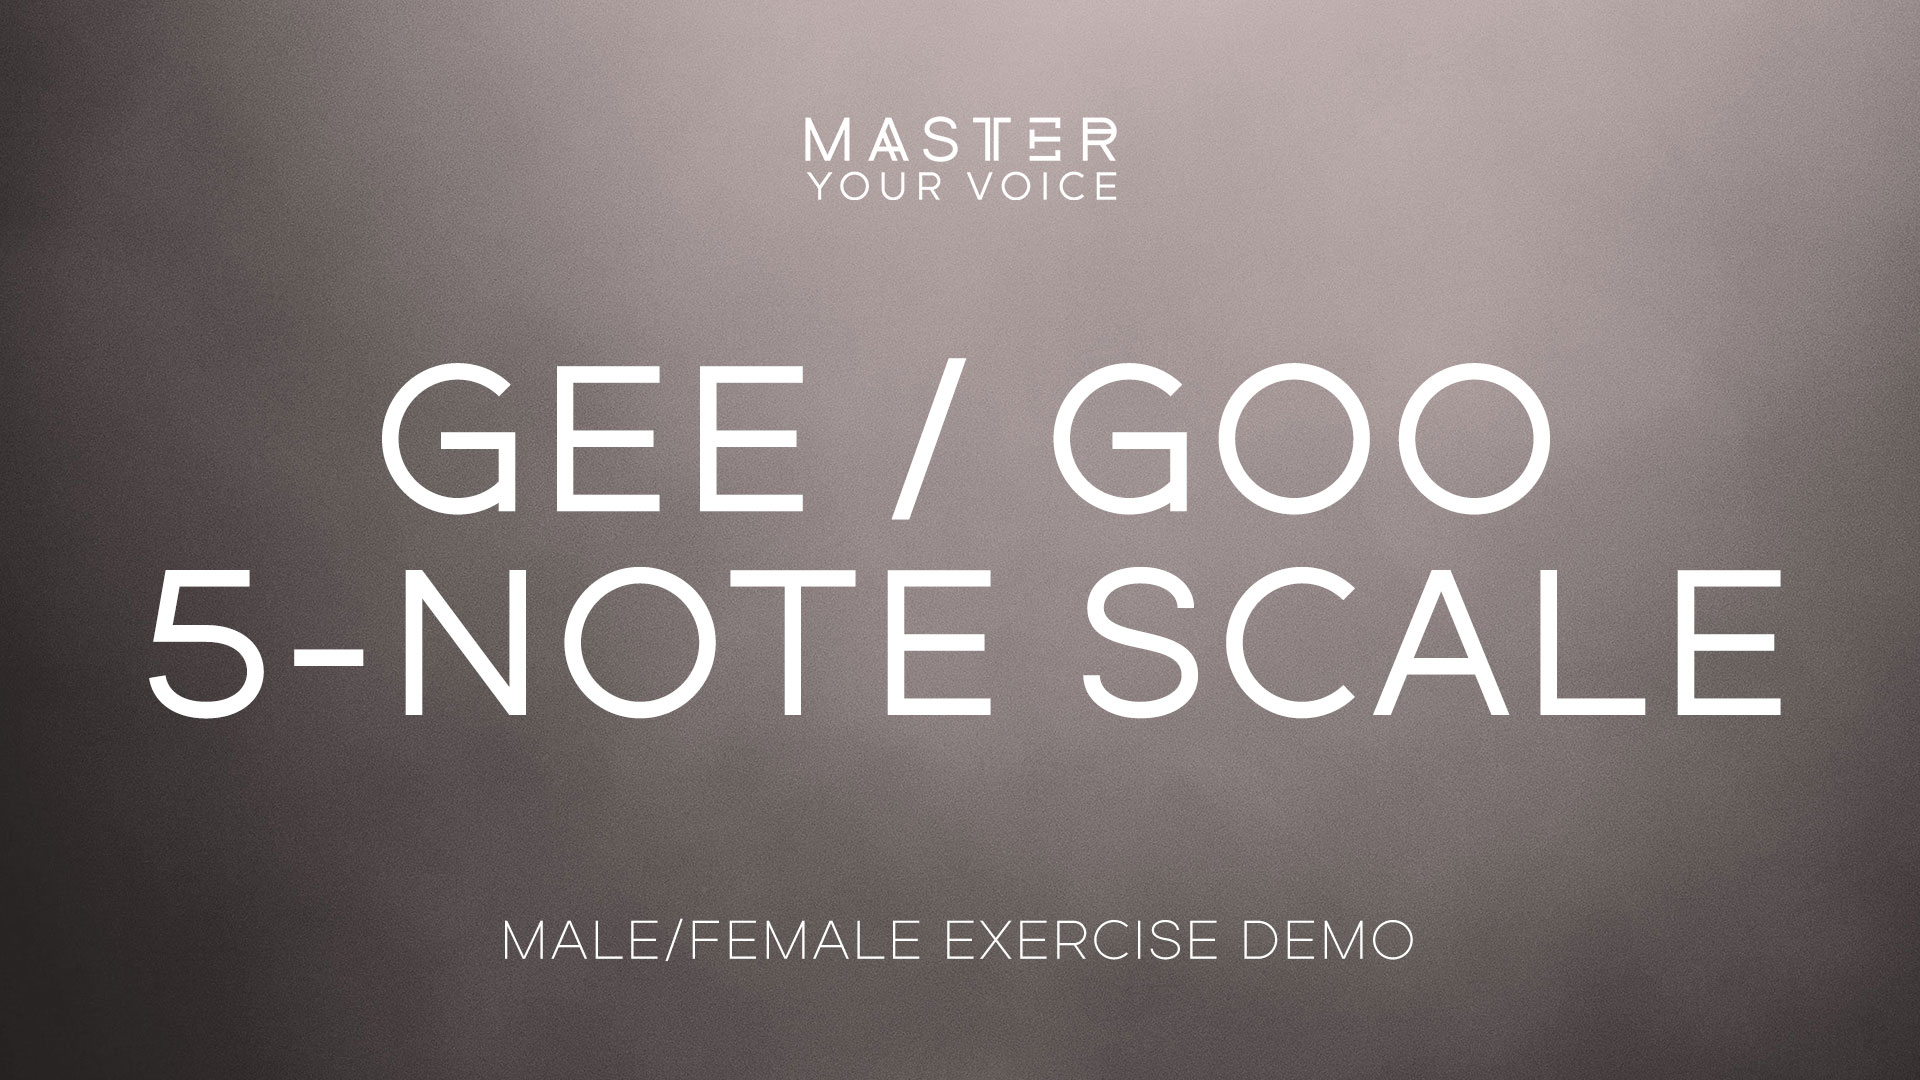 Gee / Goo 5-Note Scale Exercise Demo